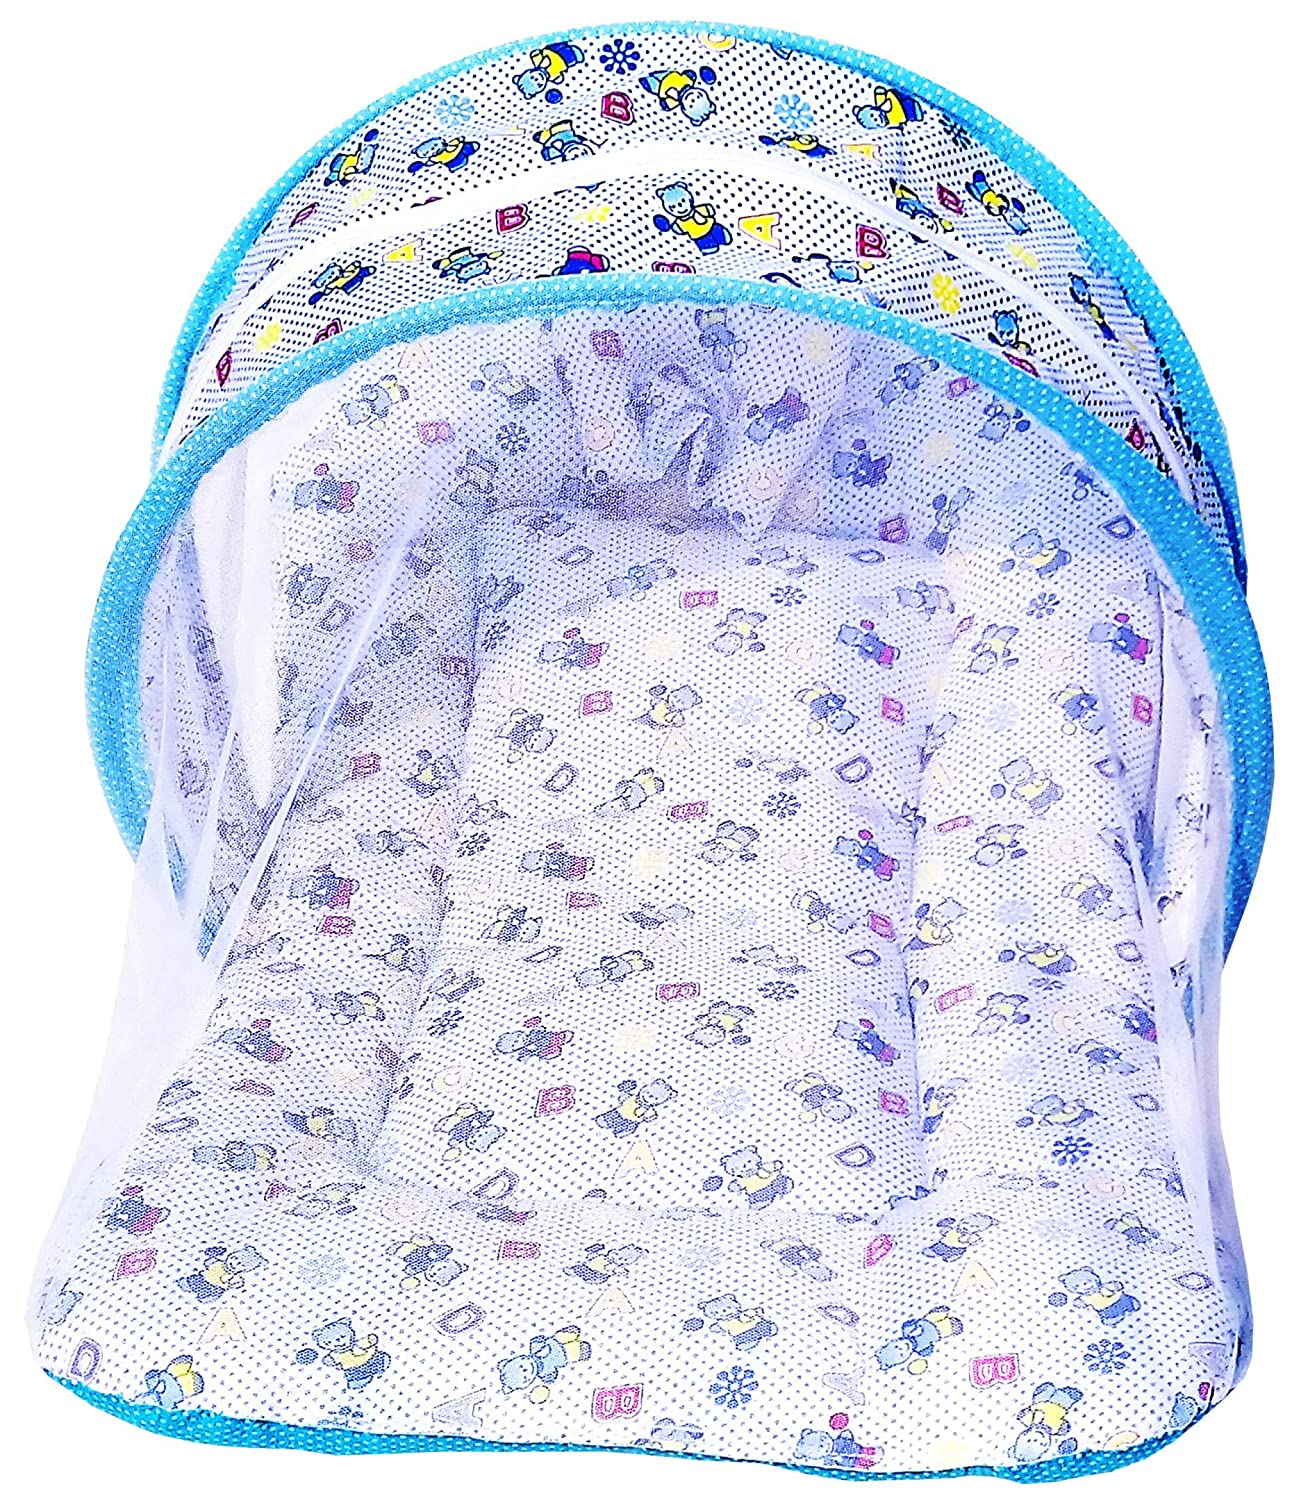 Lowest Price Nagar Baby's  Bedding Set with Mosquito Net